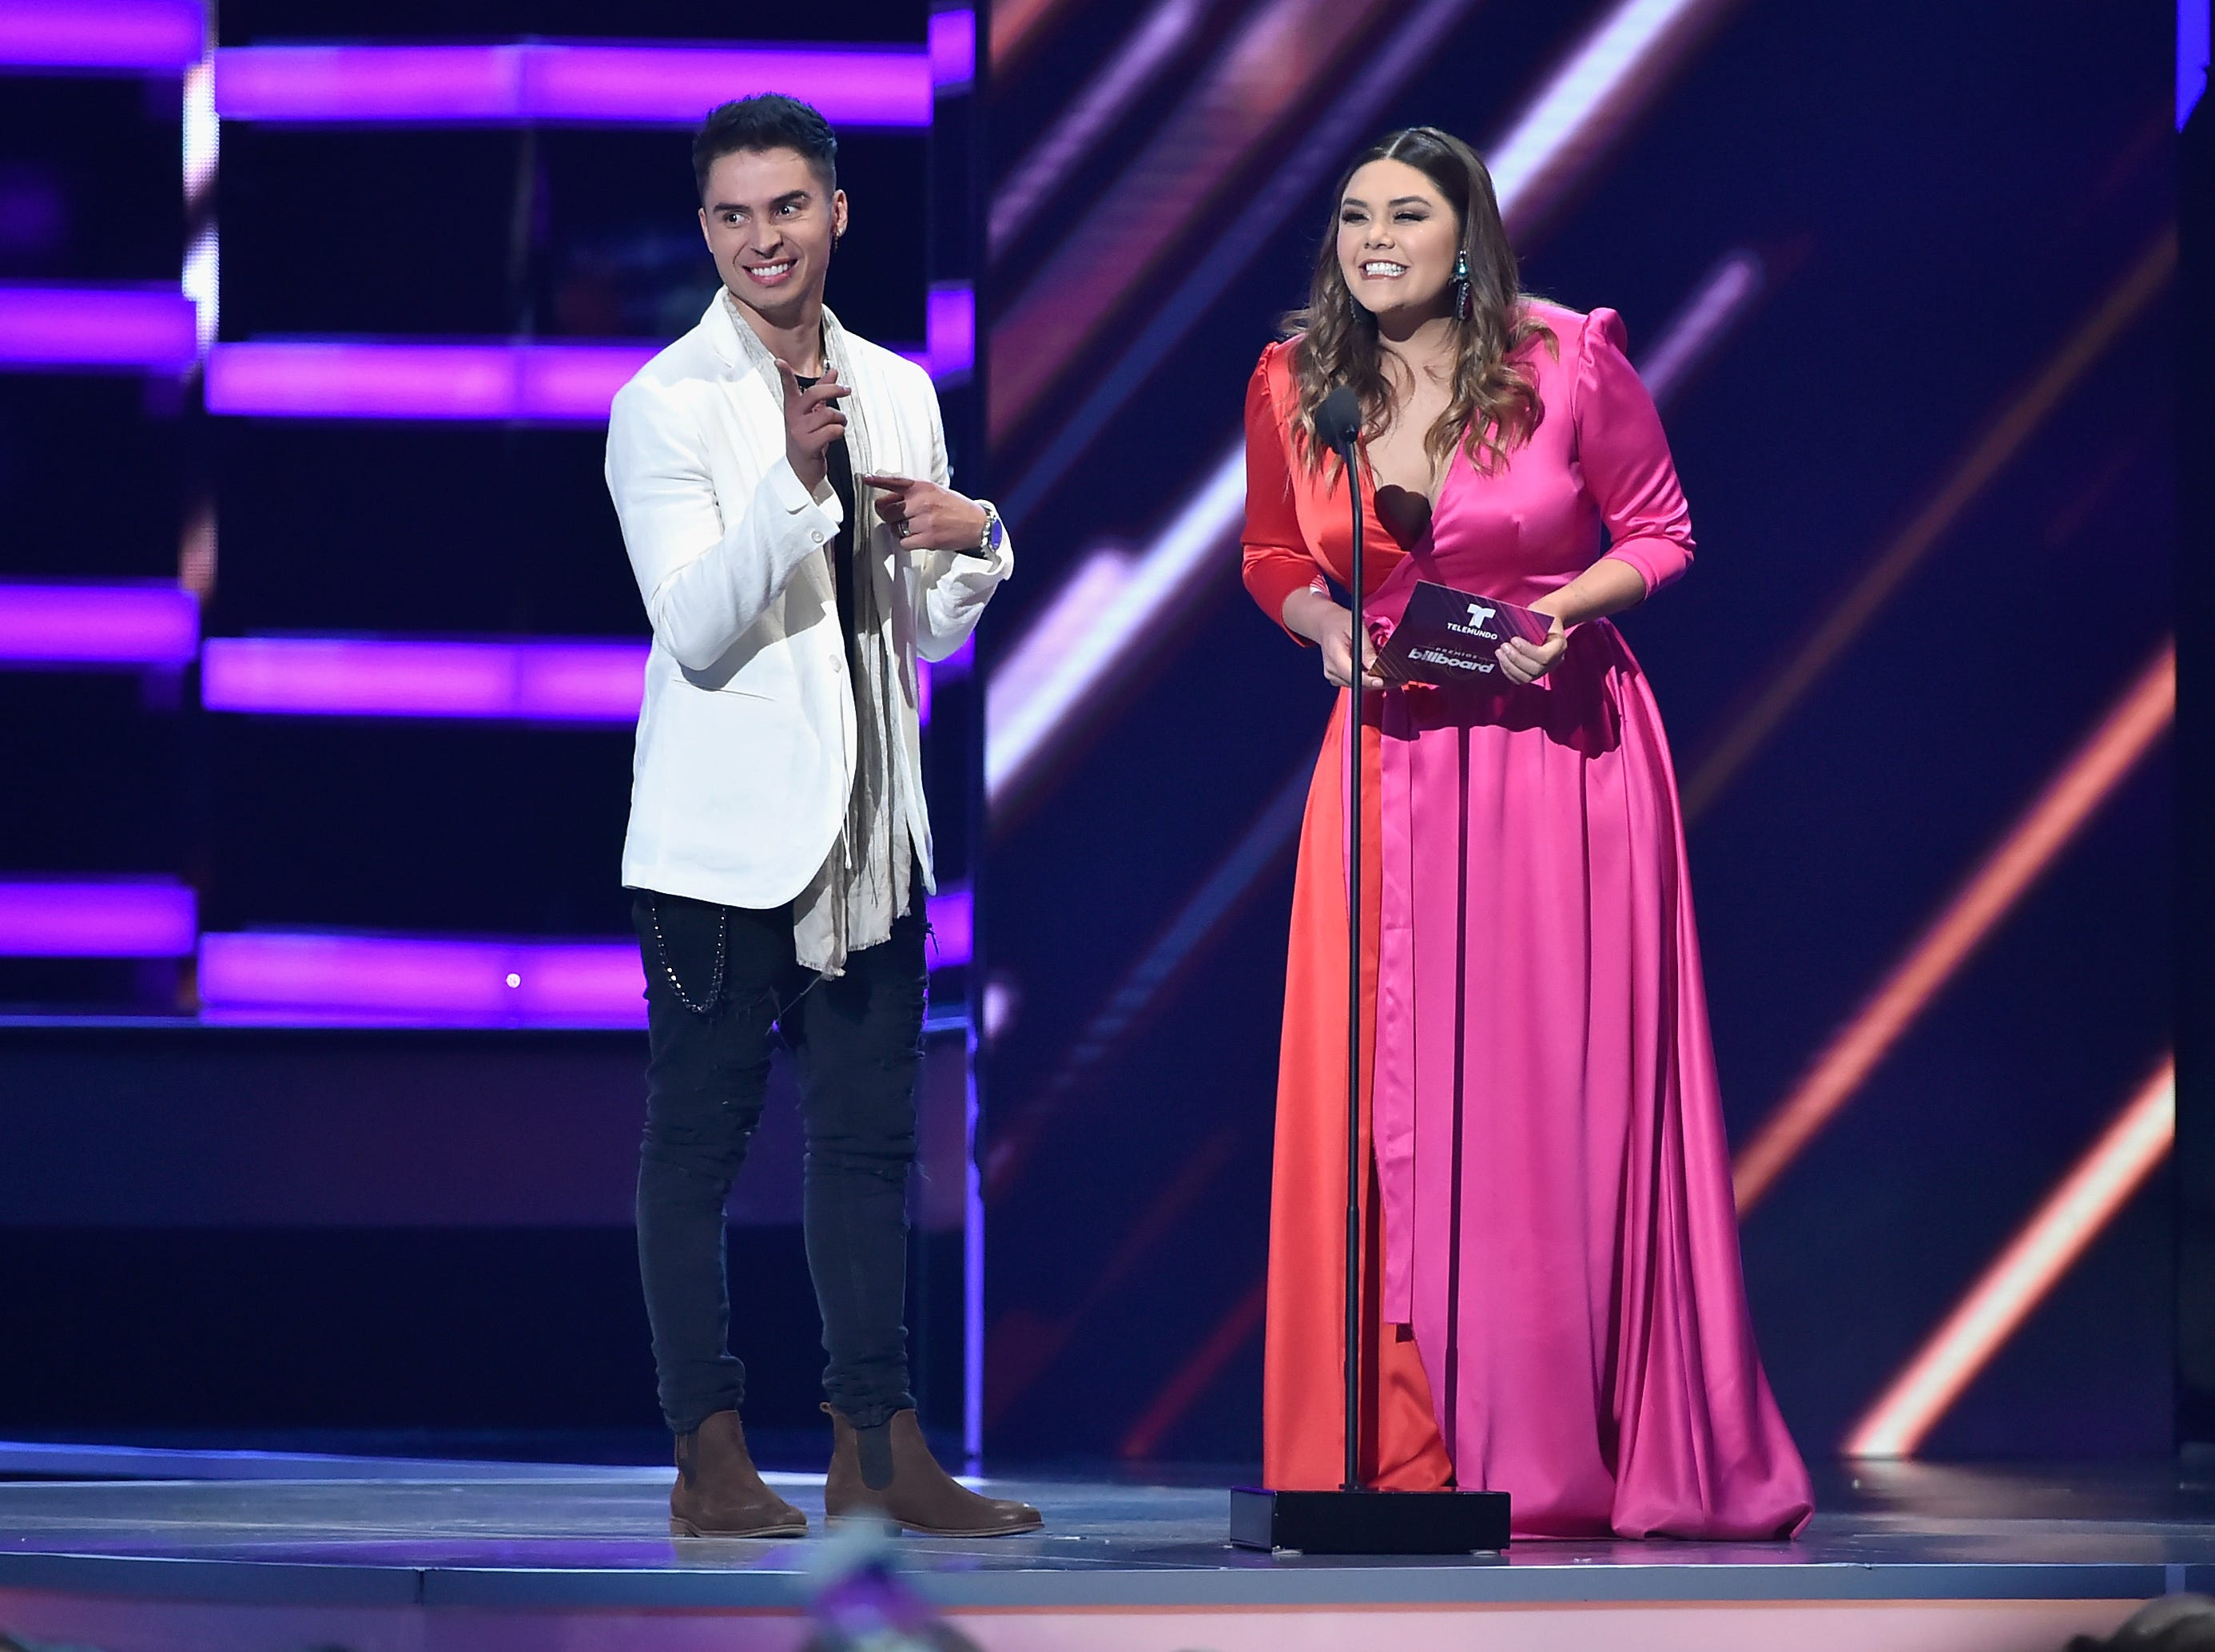 Reykon and Yuridia present an award during the 2018 Billboard Latin Music Awards on April 26, 2018, in Las Vegas.